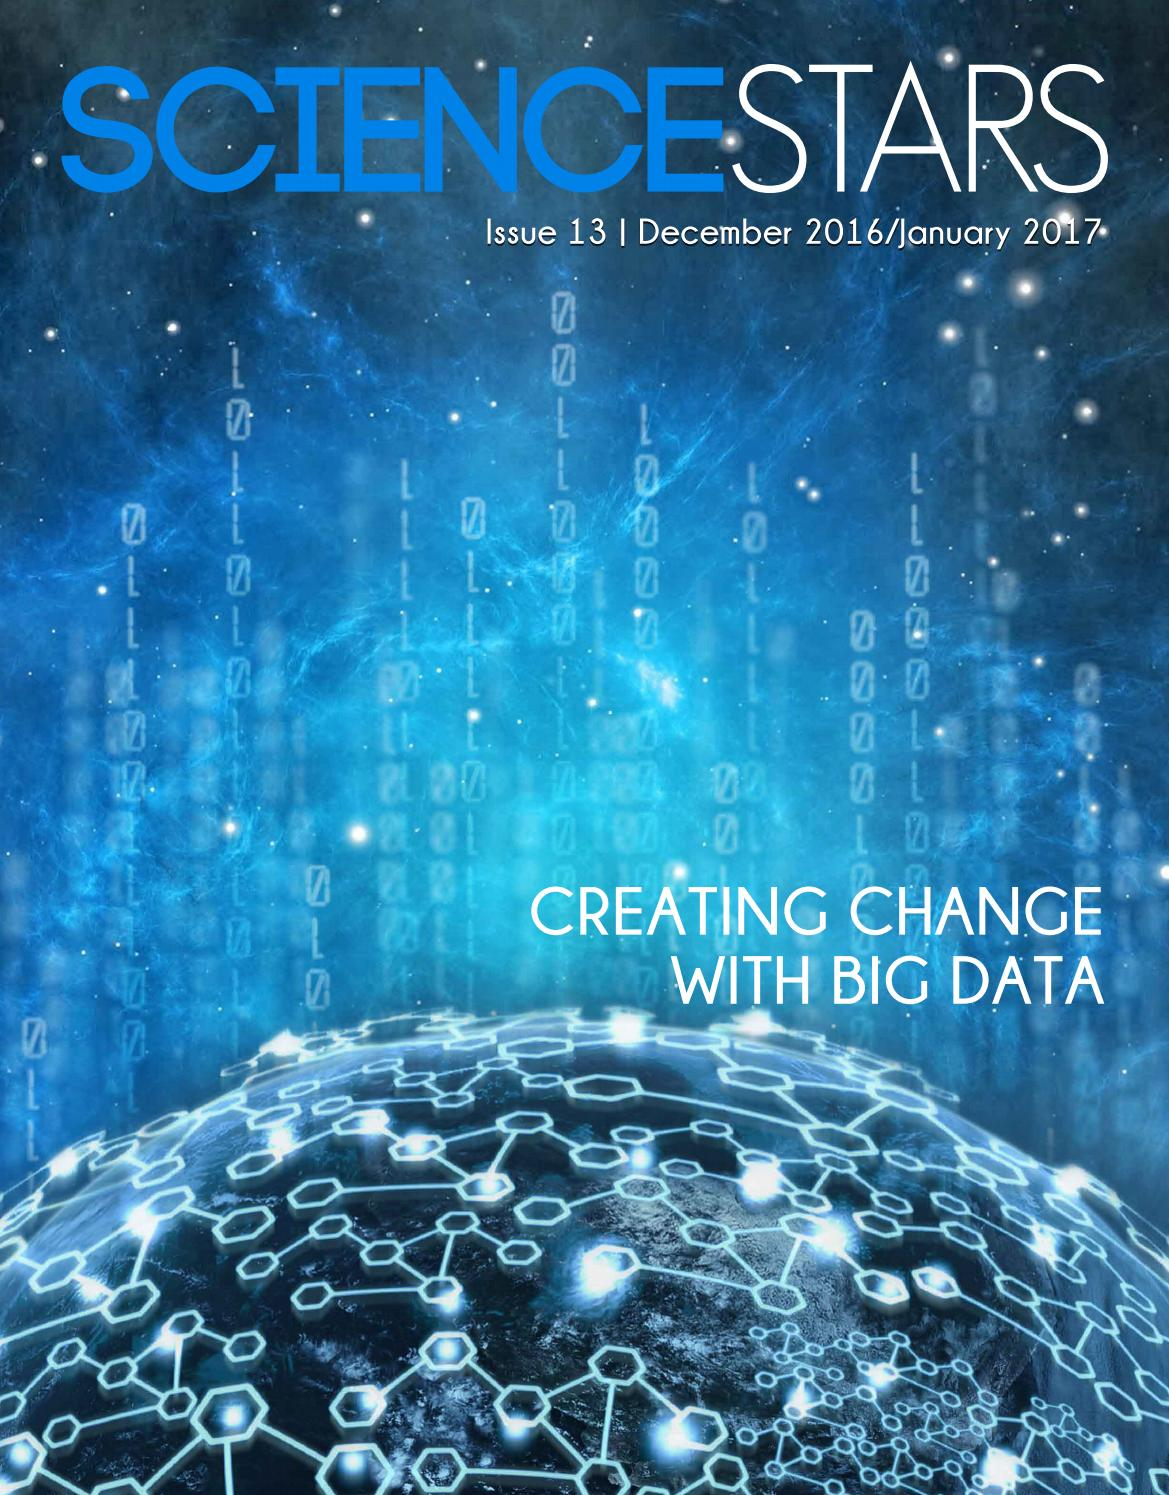 SS Big Data Issue 13 by Science Stars Magazine - issuu